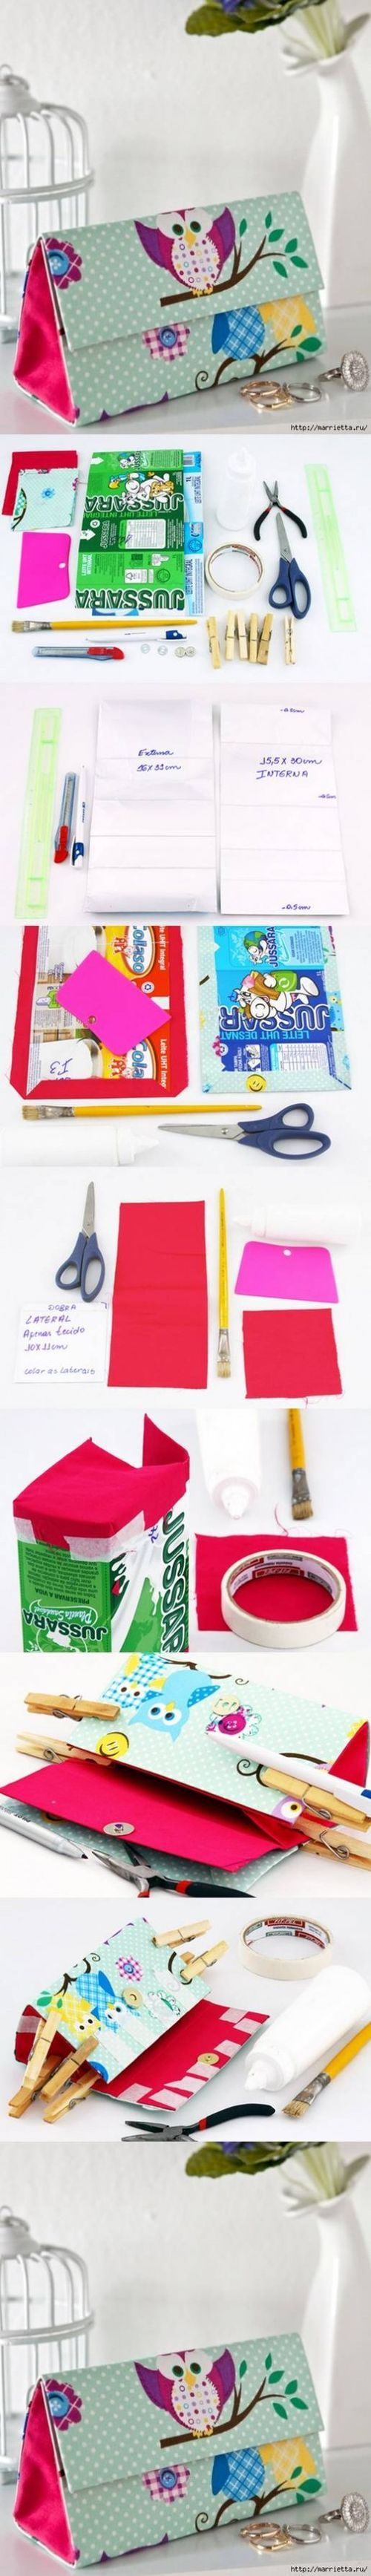 How to make Milk Boxes designer Clutch Handbags DIY tutorial instructions / How To Instructions